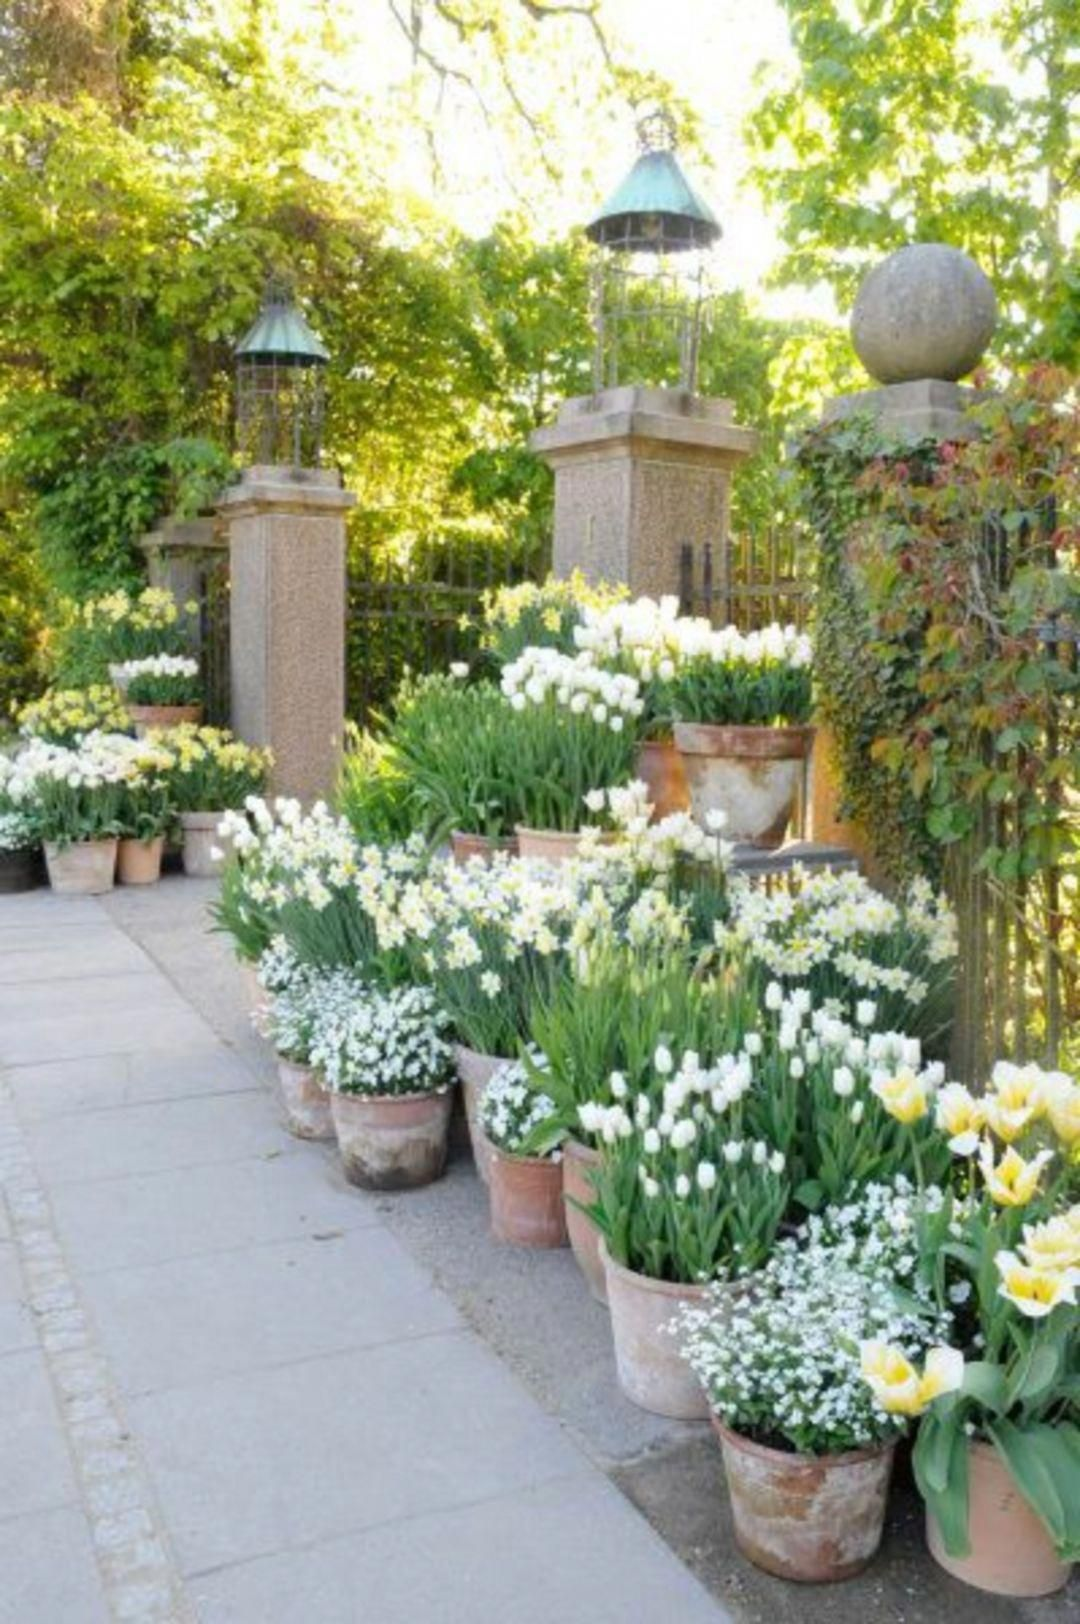 Landscaping ideas for front yards cheap beautiful home garden designs also rh pinterest